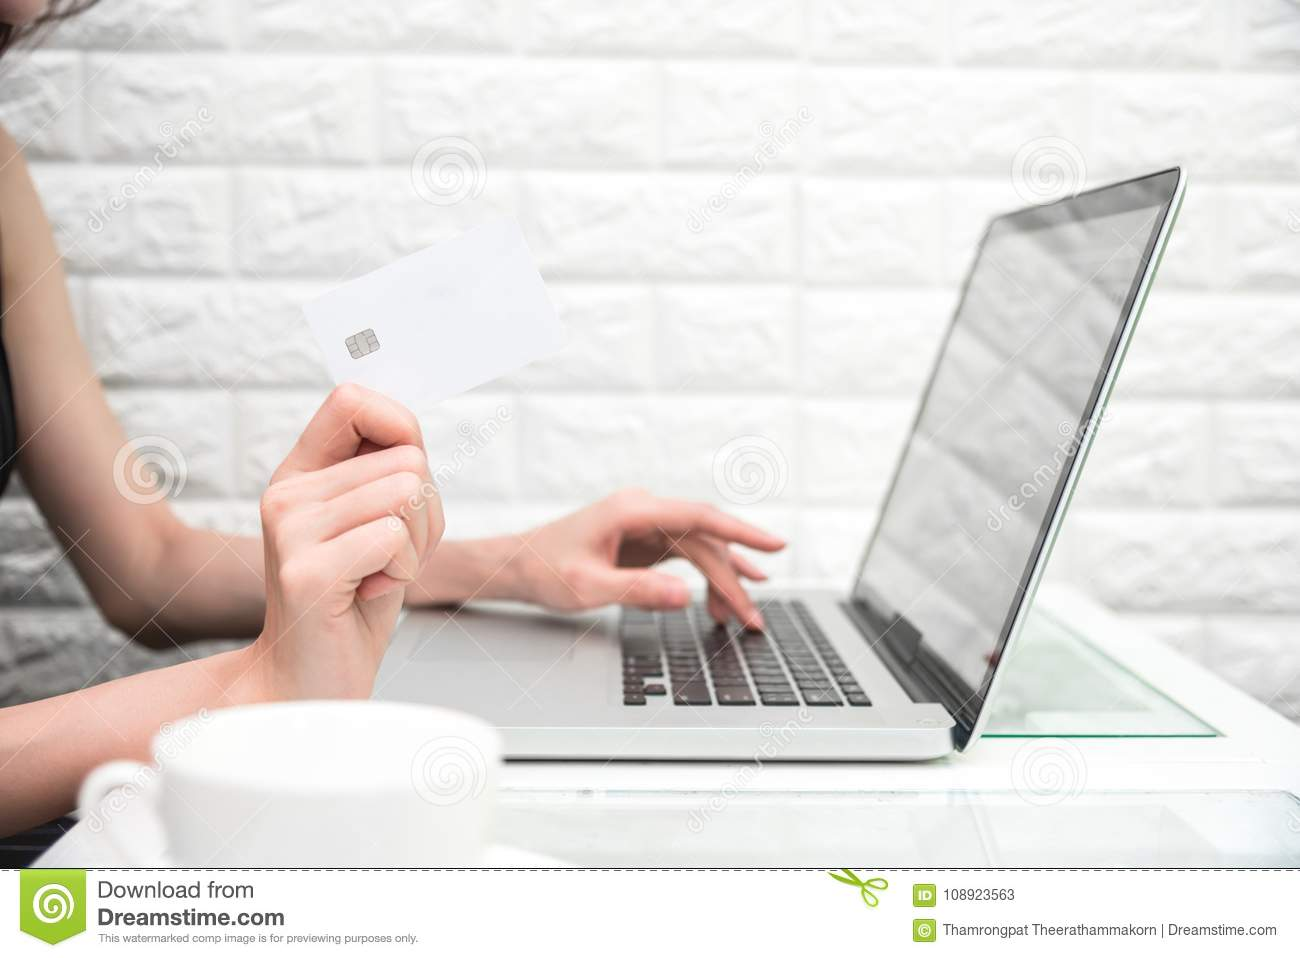 Woman hands holding credit card for online shopping or ordering